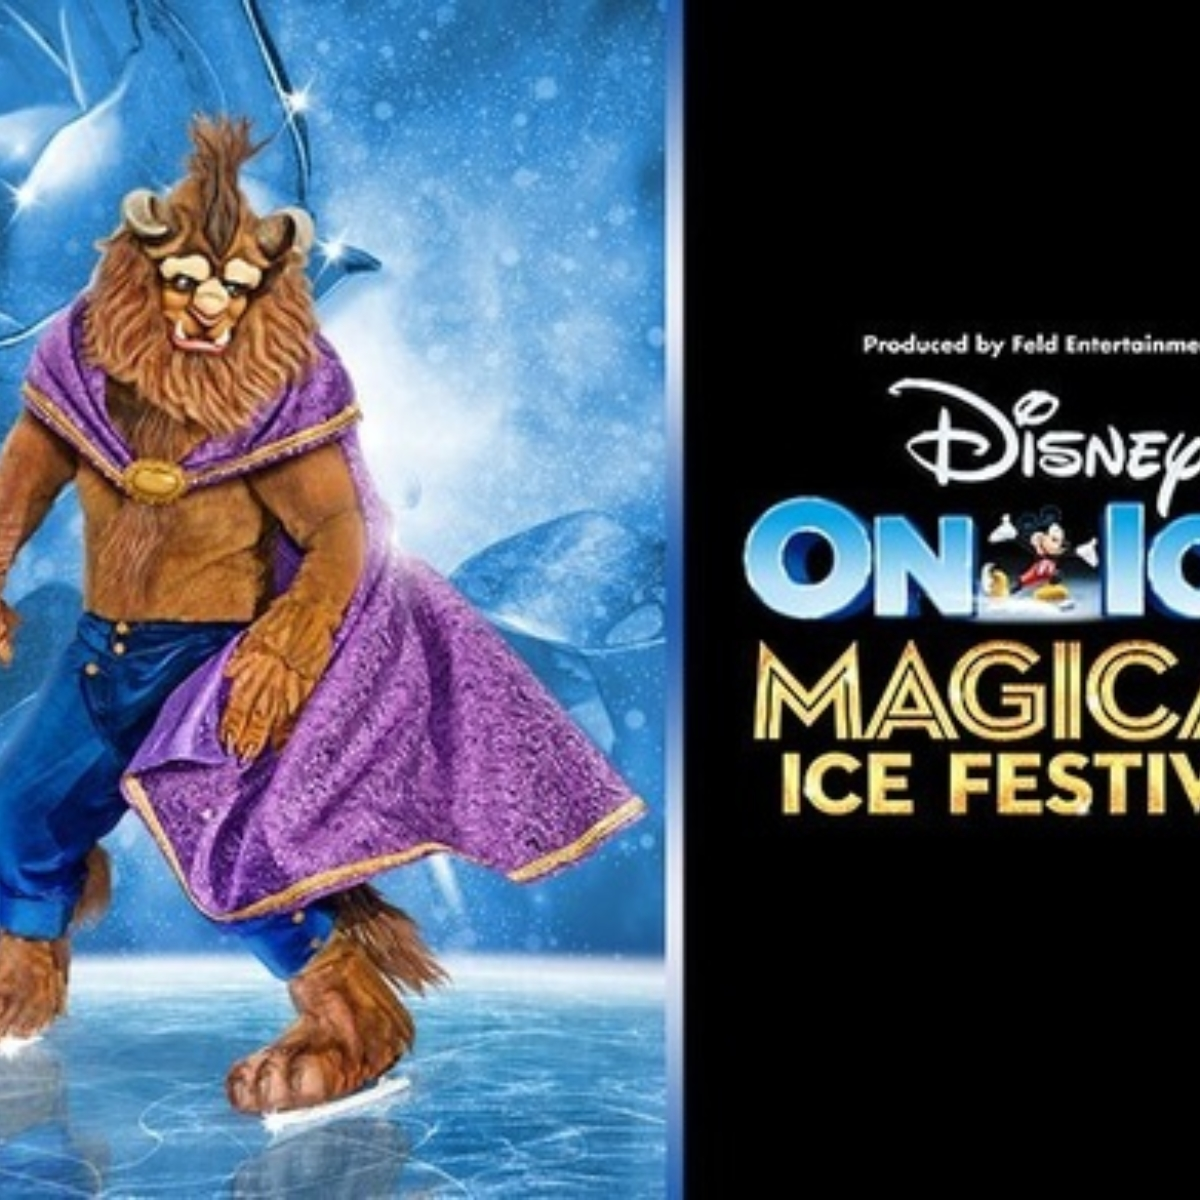 Disney On Ice presents Magical Ice Festival (Liverpool) Images